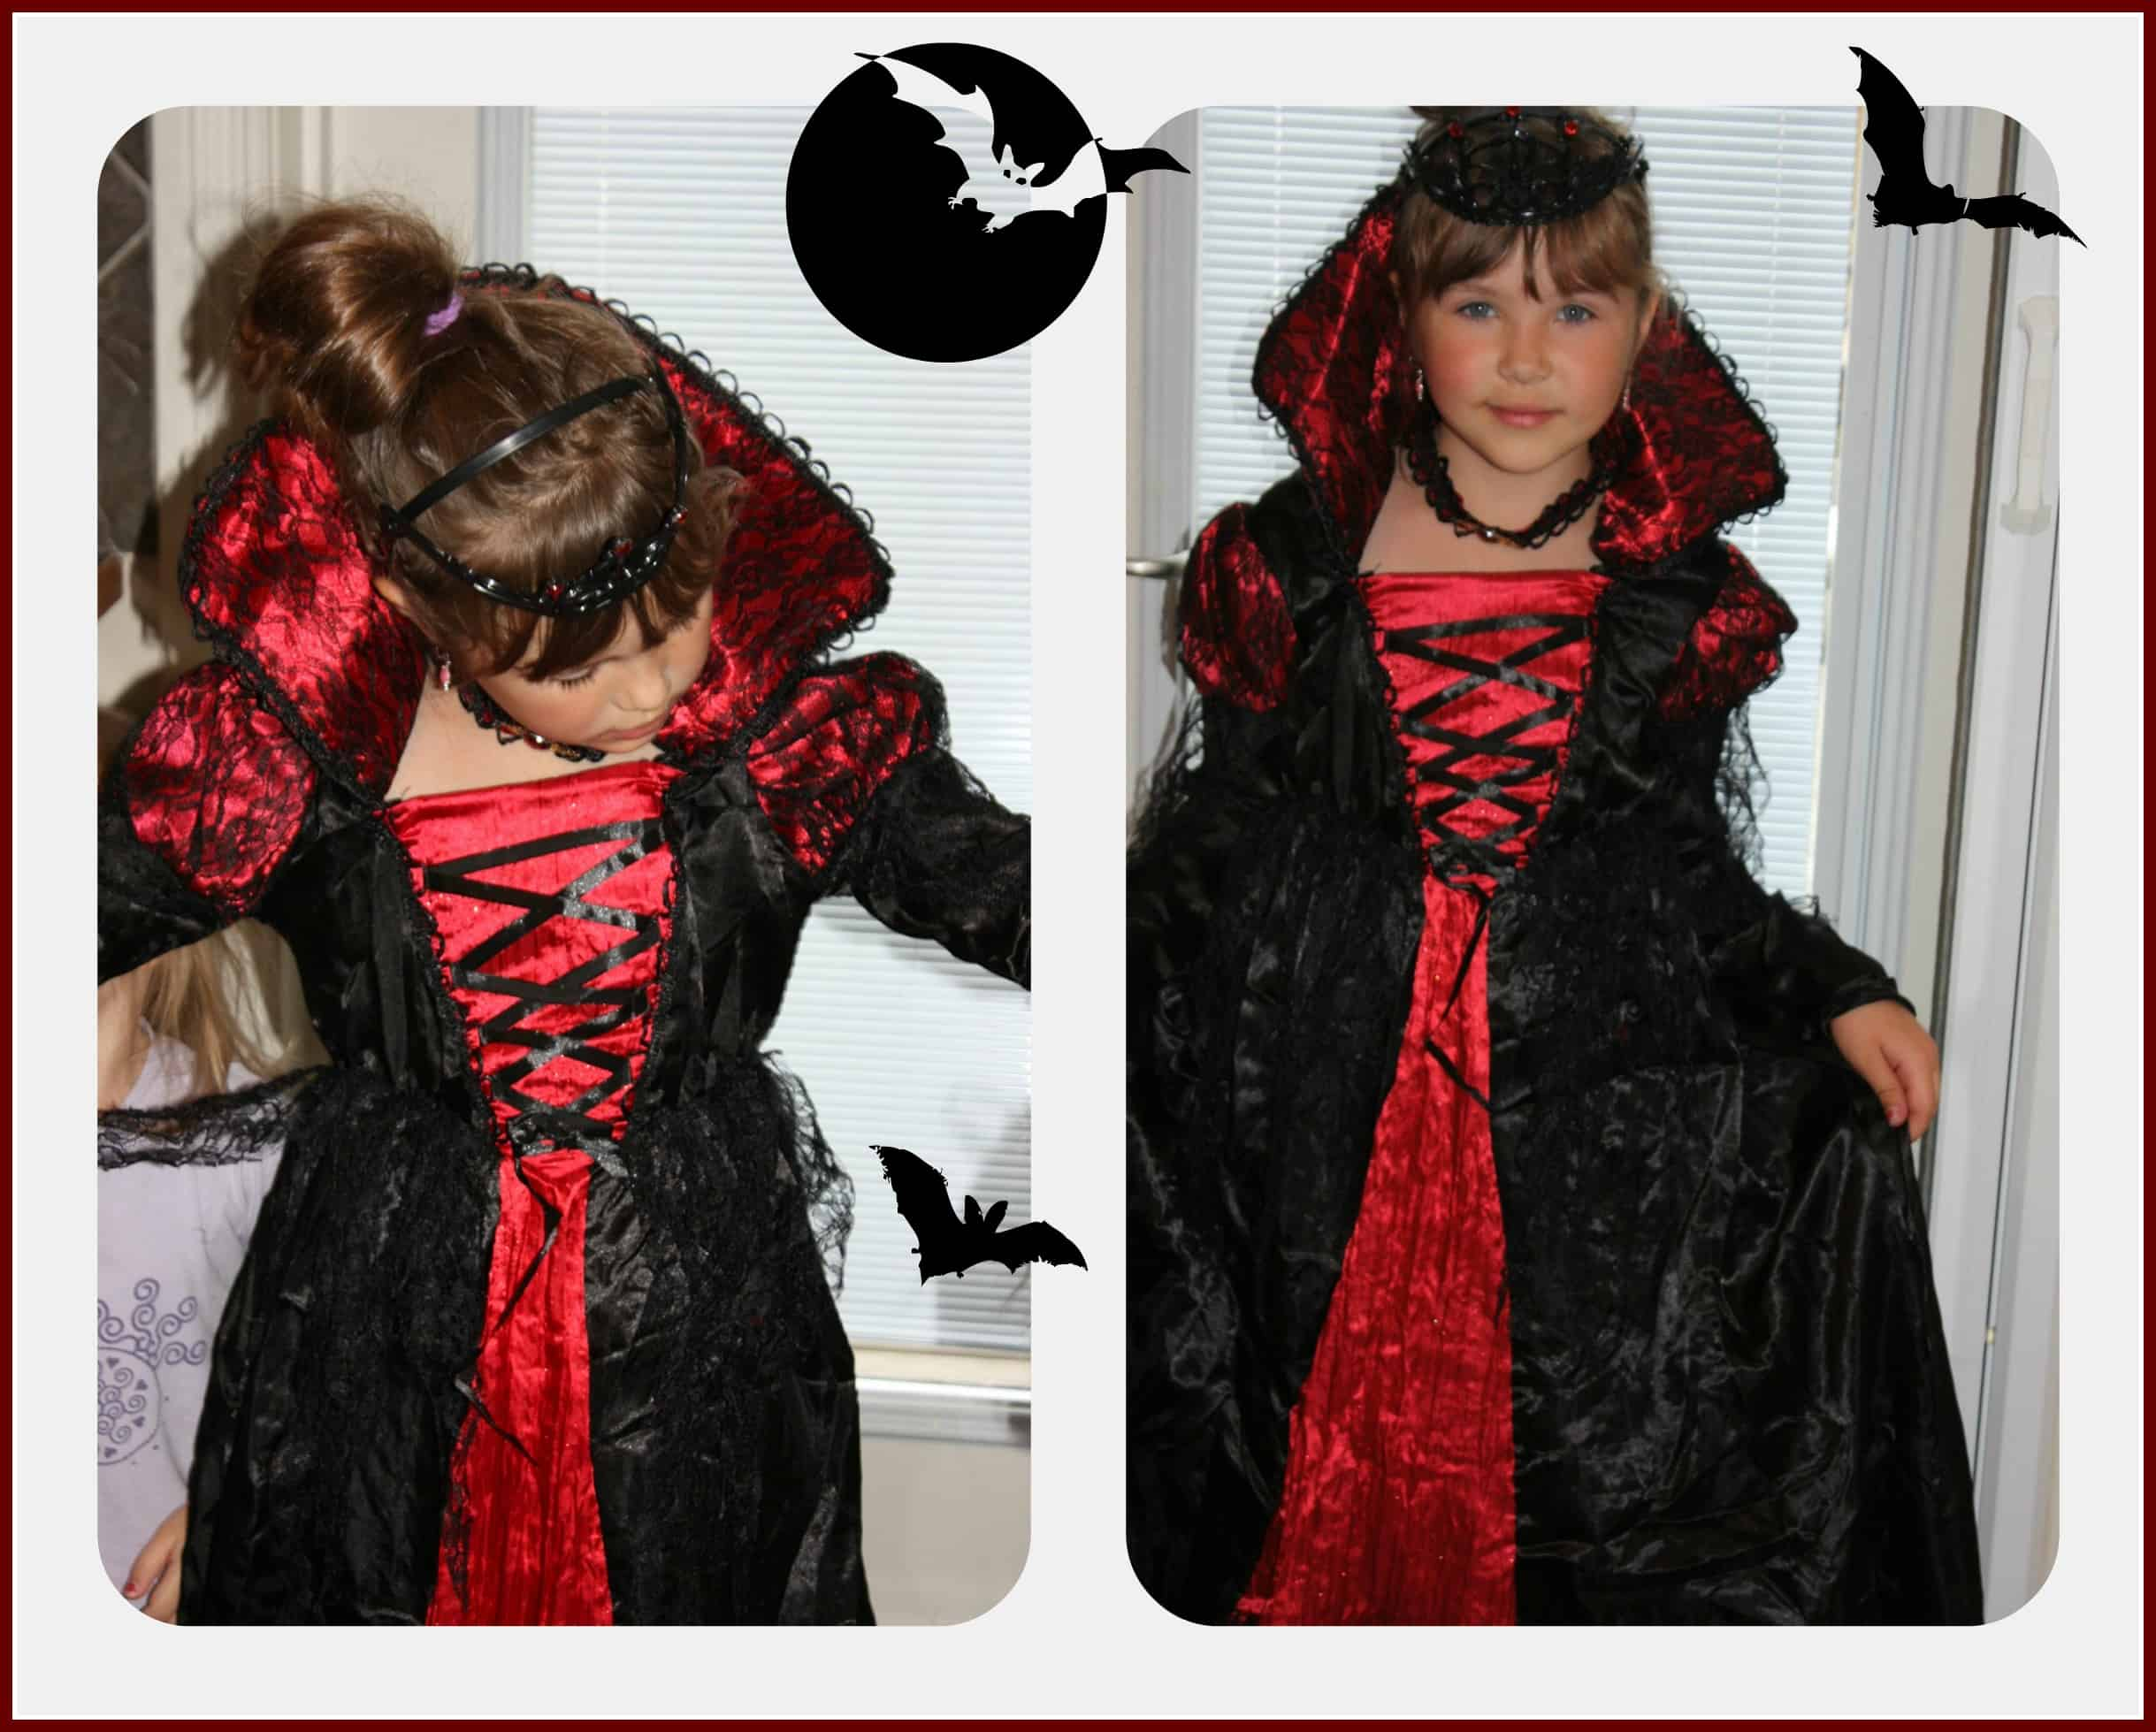 A Canadian Vampire-Princess for Halloween